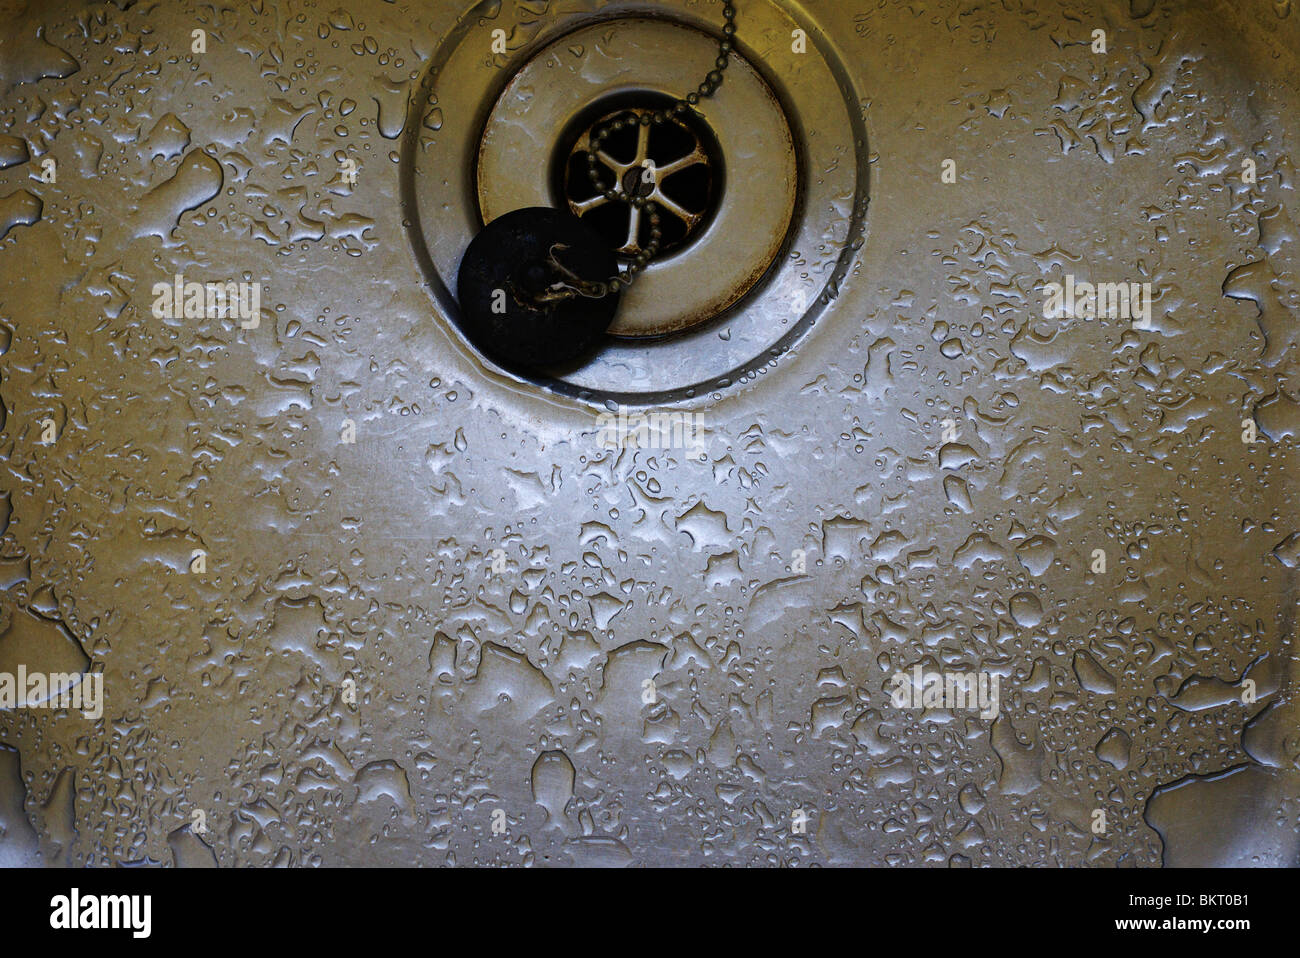 Down my plughole 4 - Stock Image